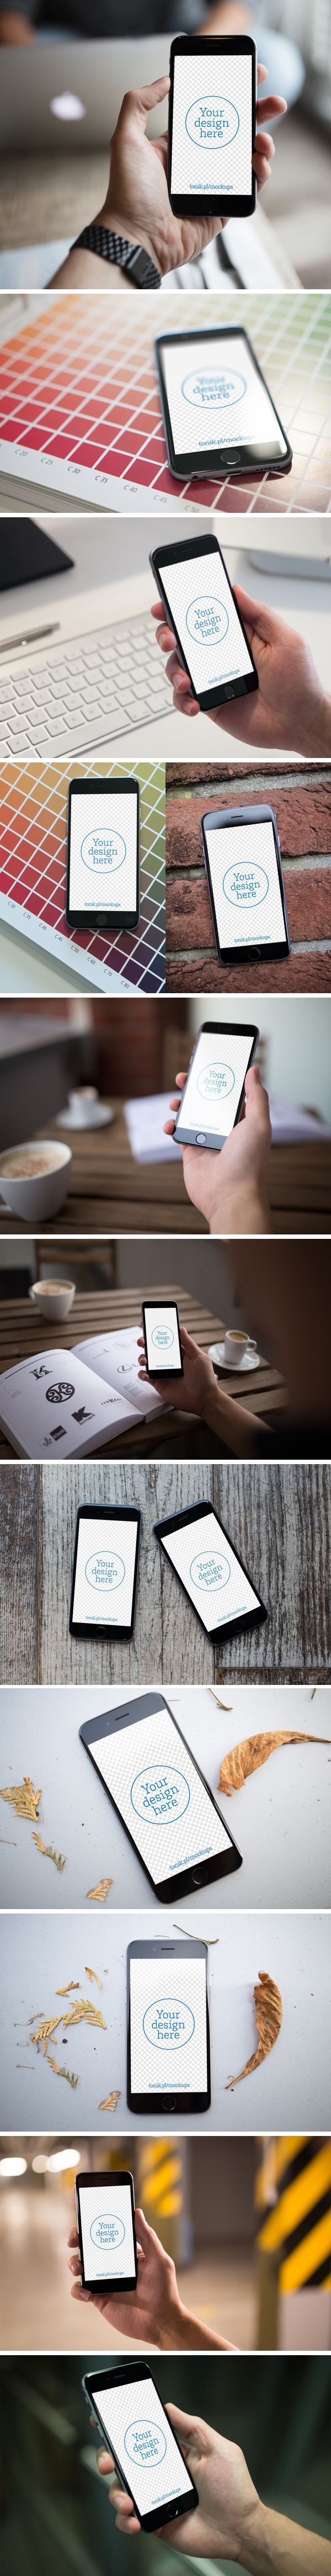 12 iPhone 6 Photo MockUps | GraphicBurger